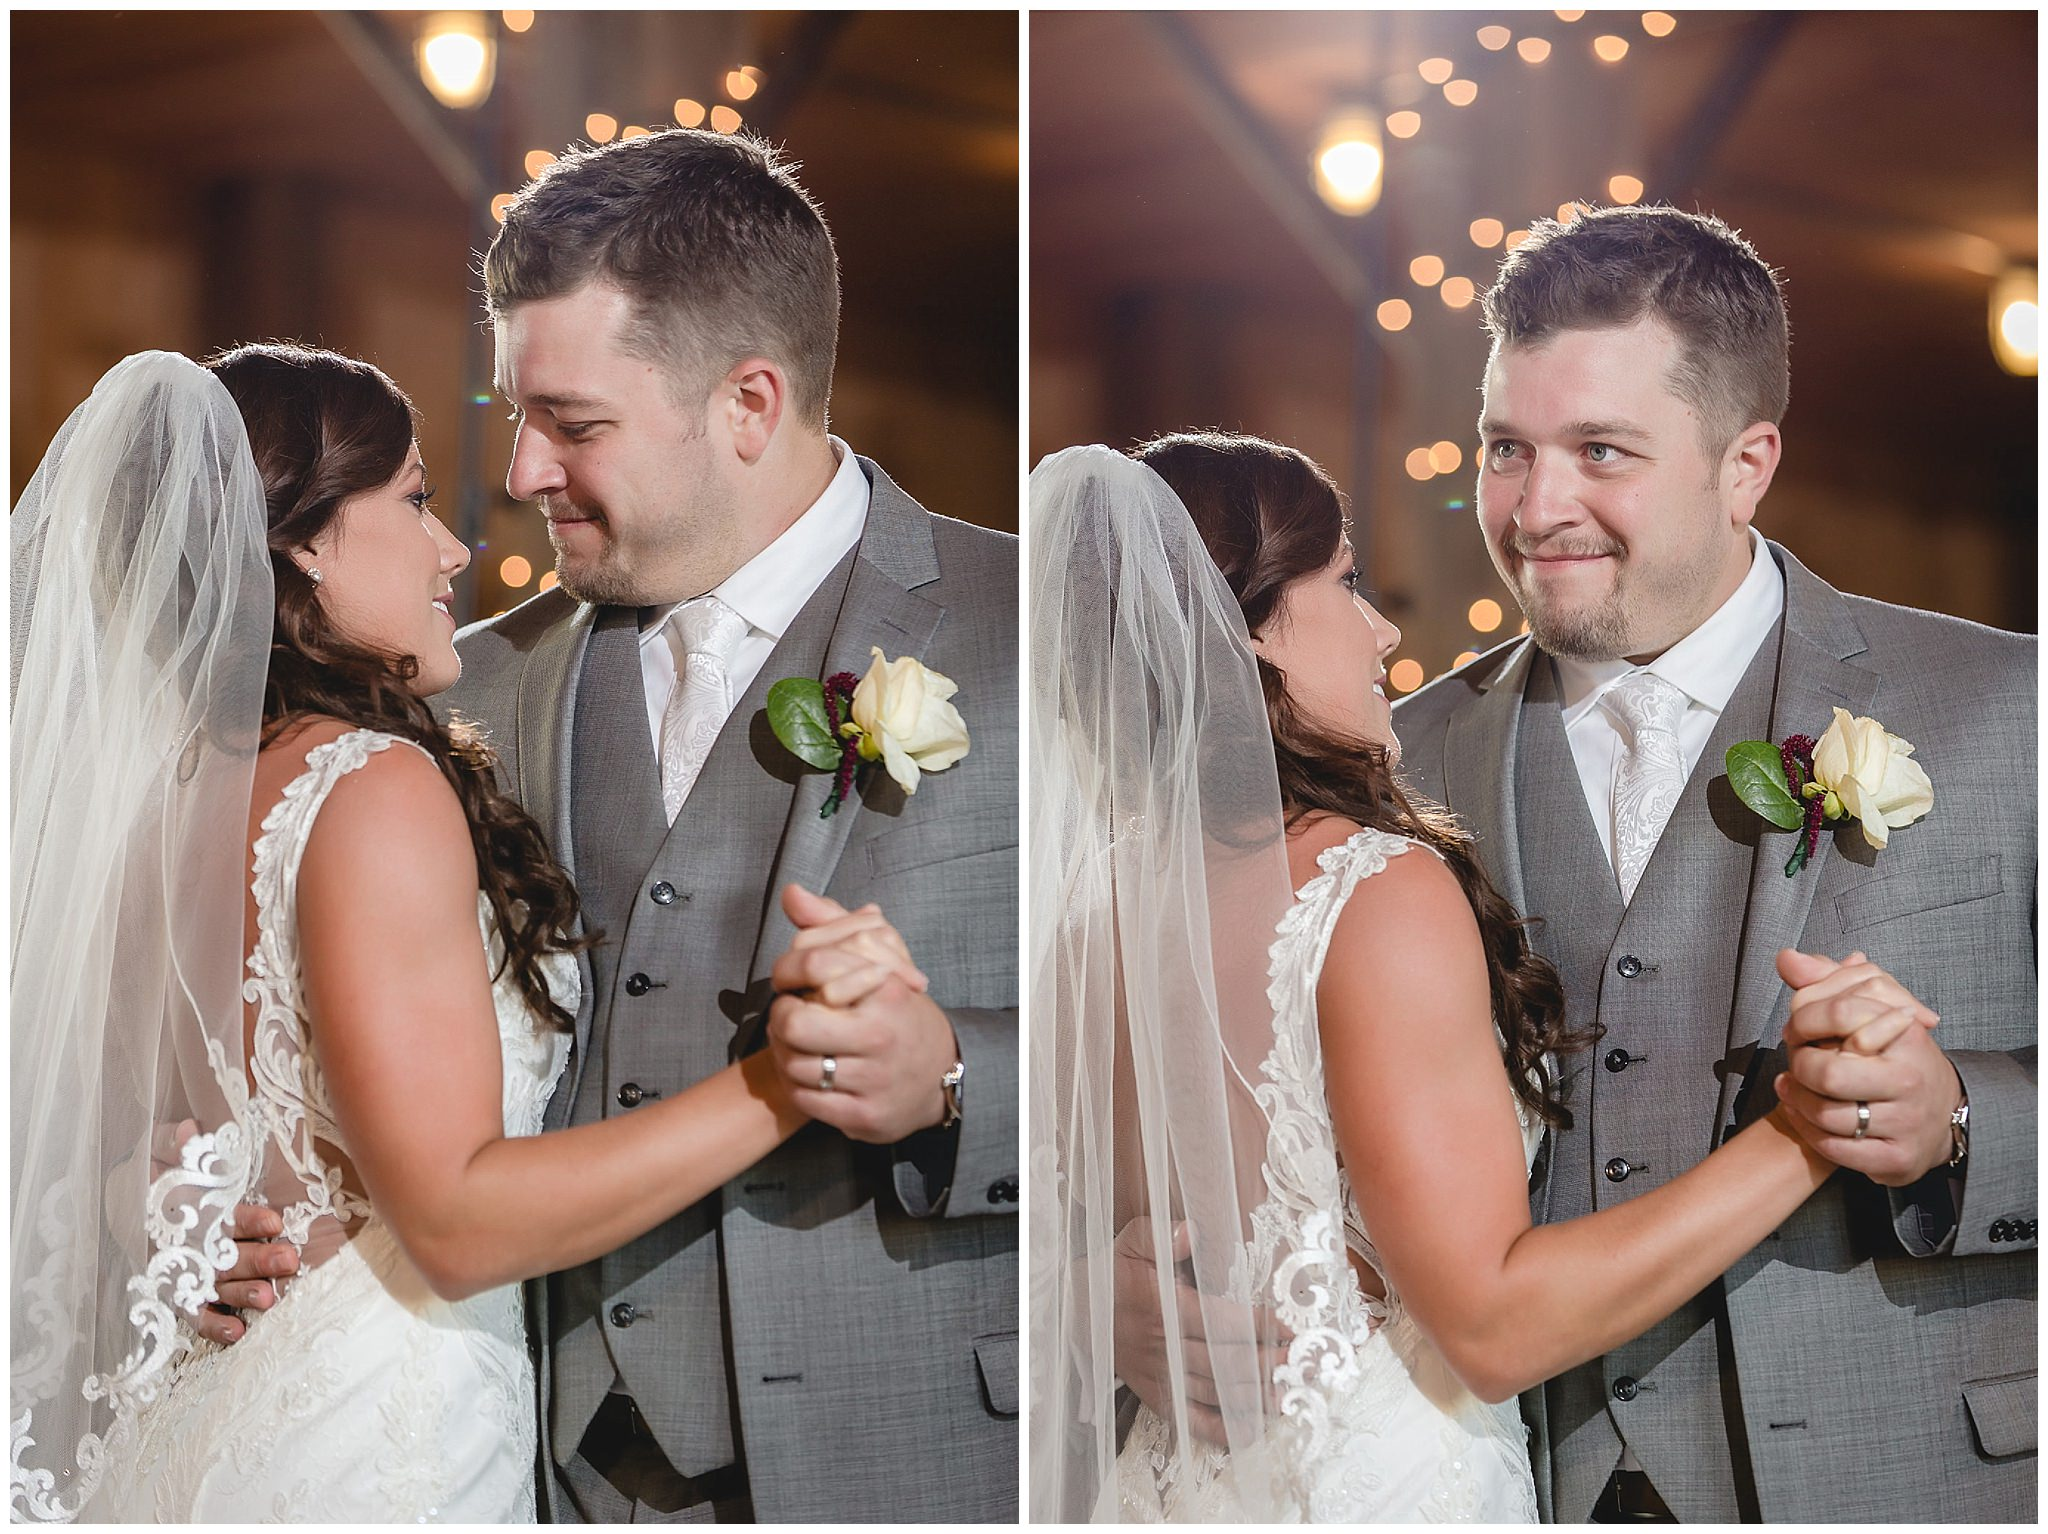 Bride and groom's first dance at White Barn